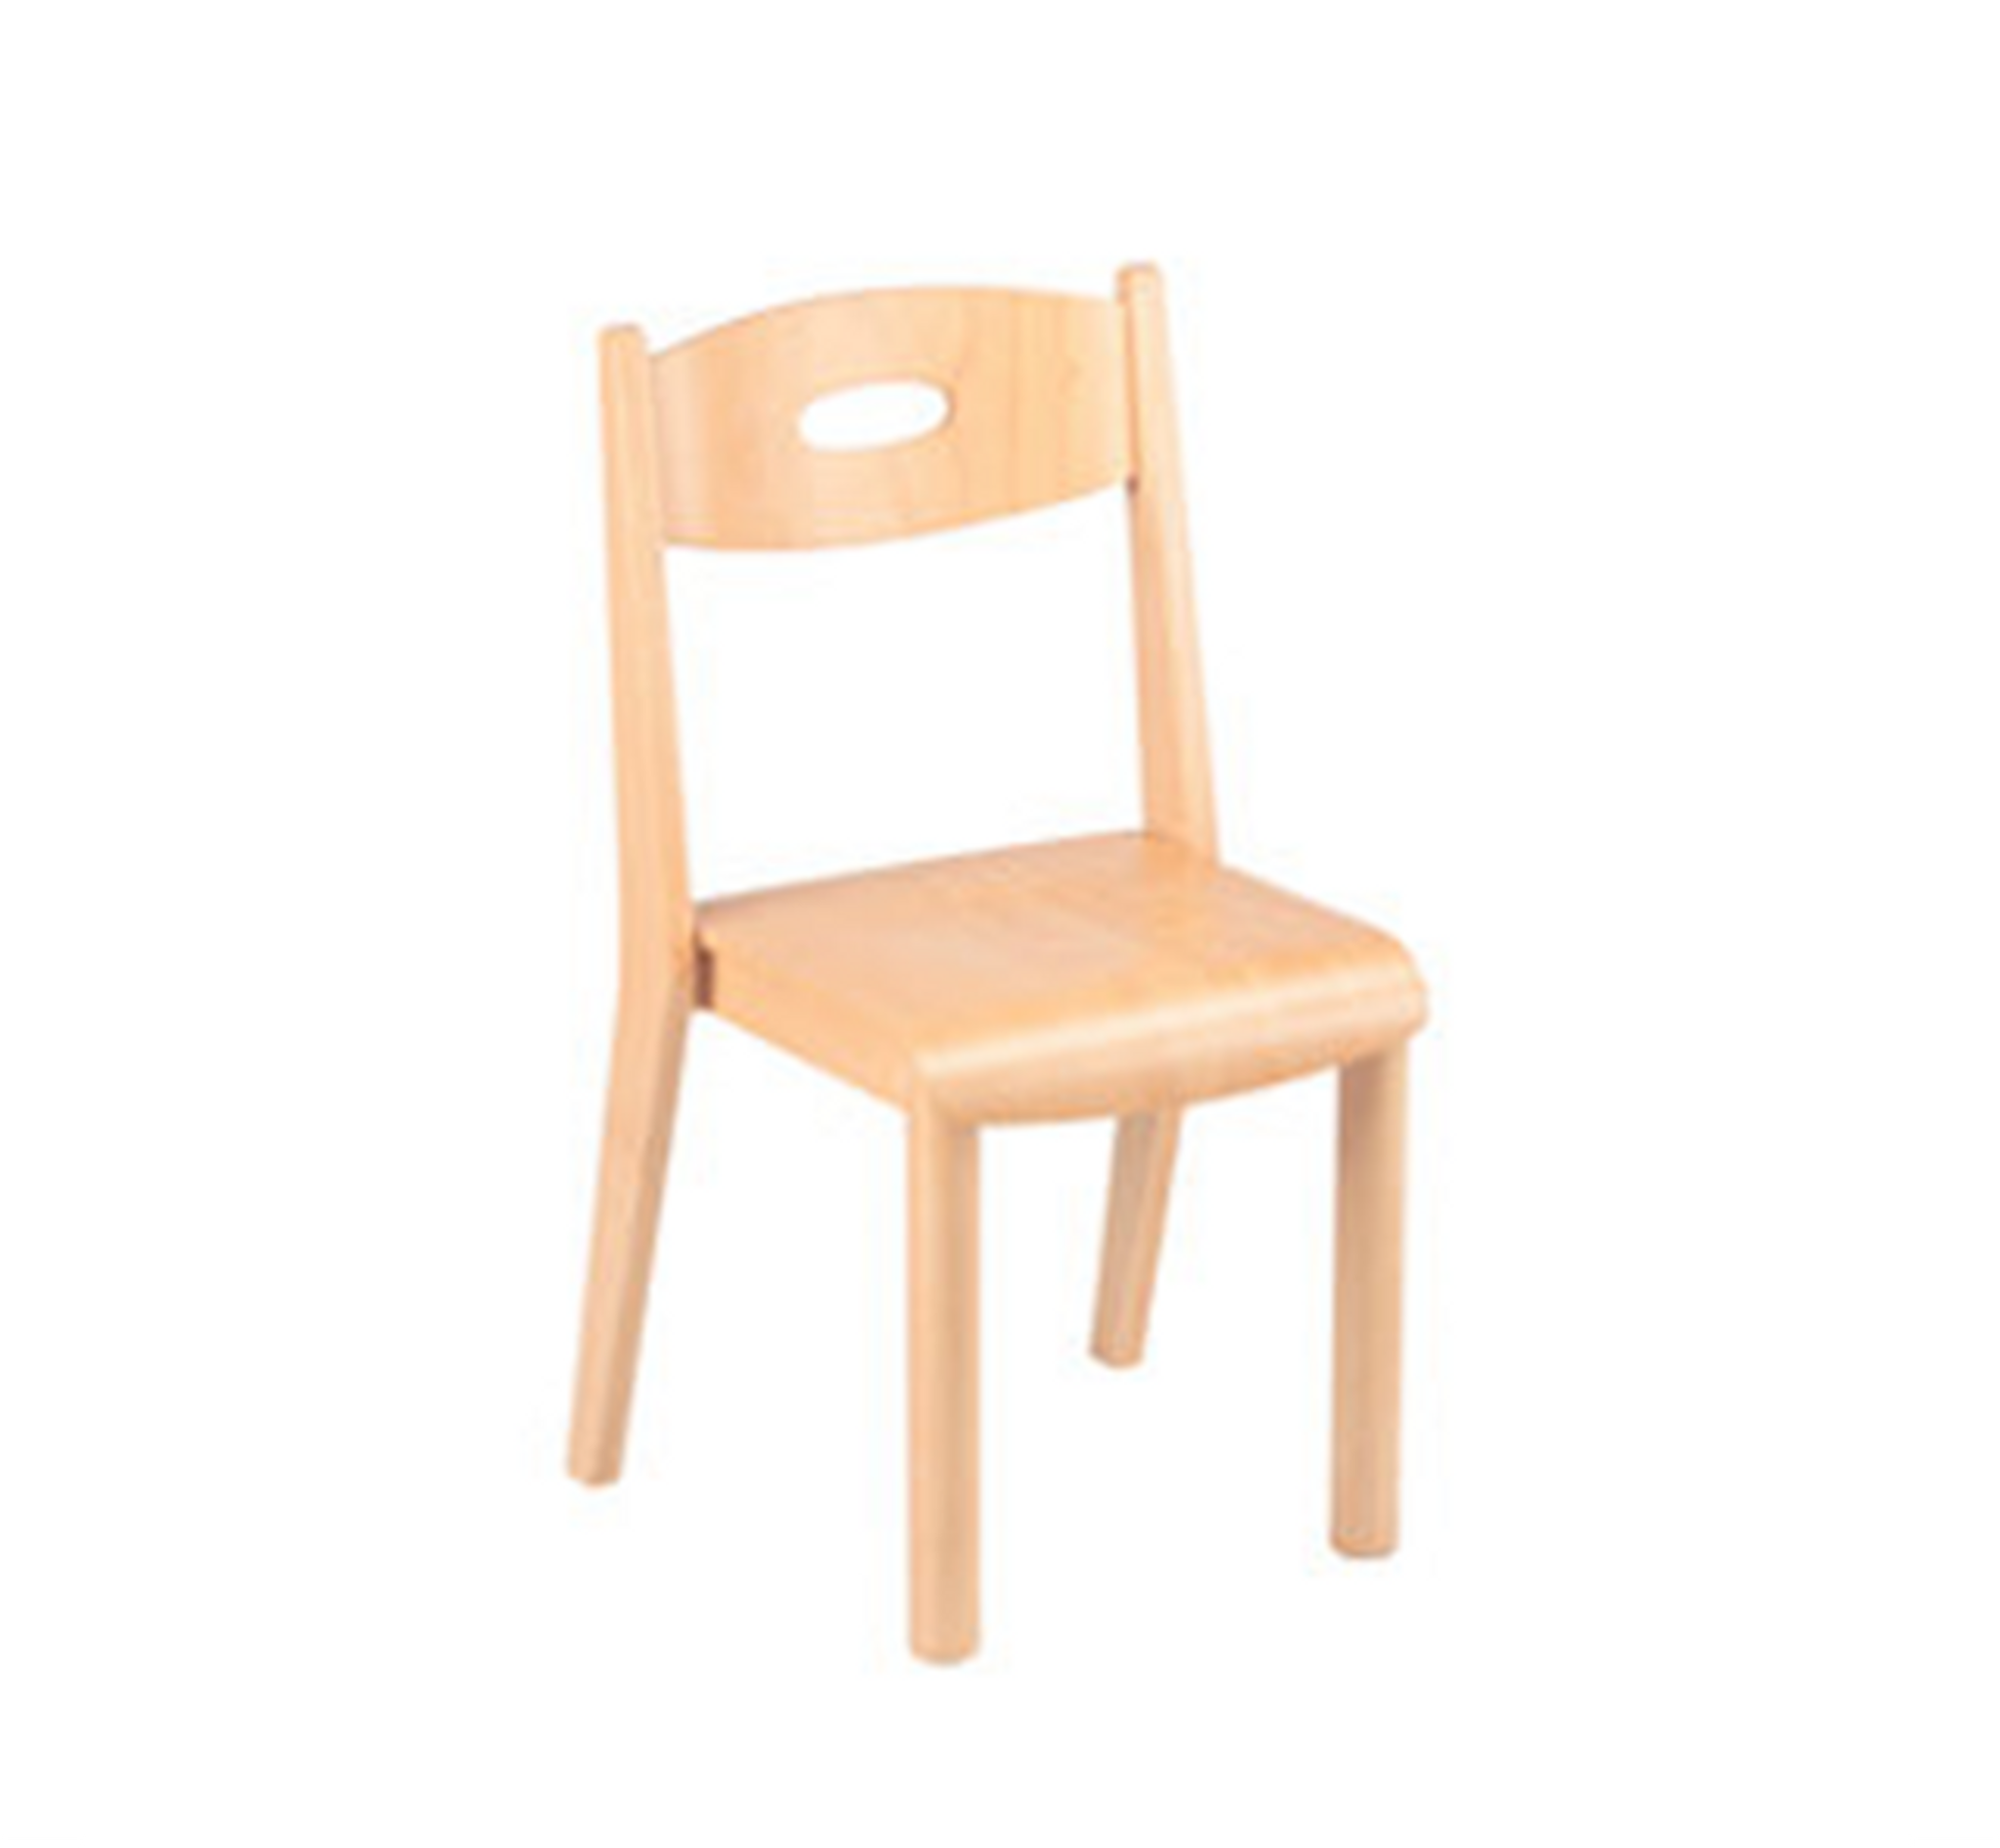 Stackable Wooden Chair - Multiple Sizes Available